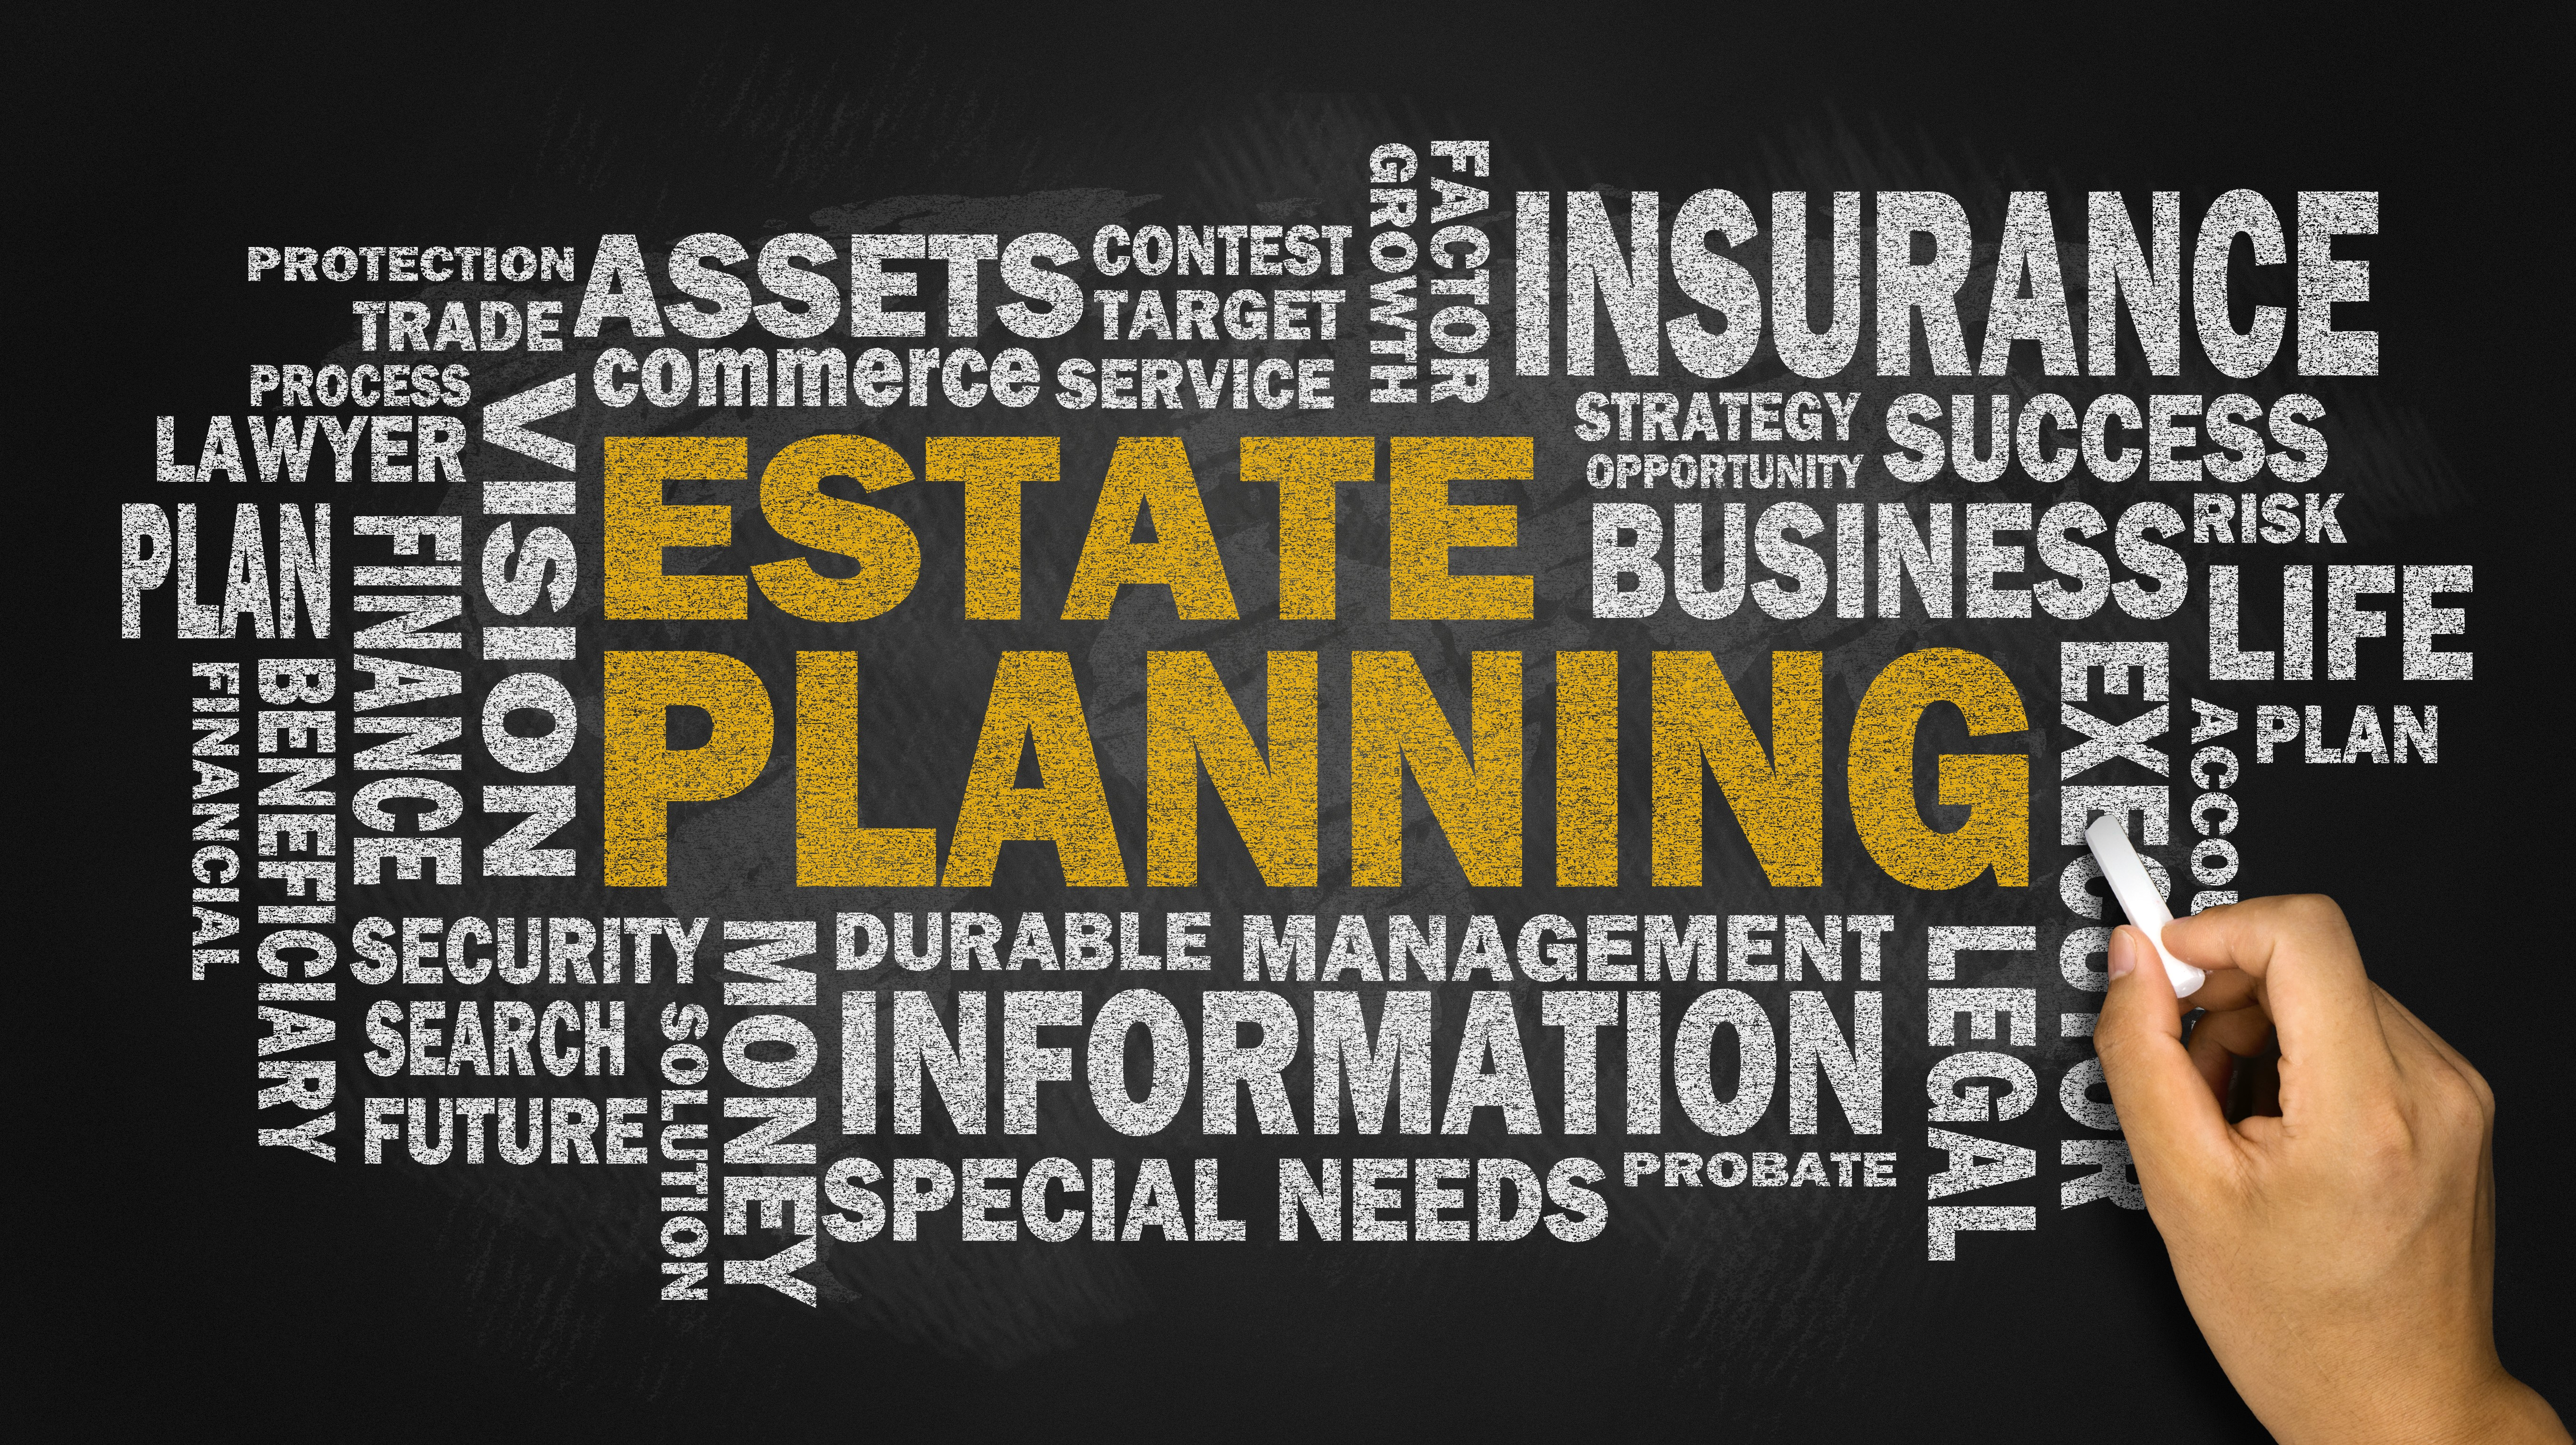 APEG 5 Things Every Financial Planner Should Know About Estate Planning